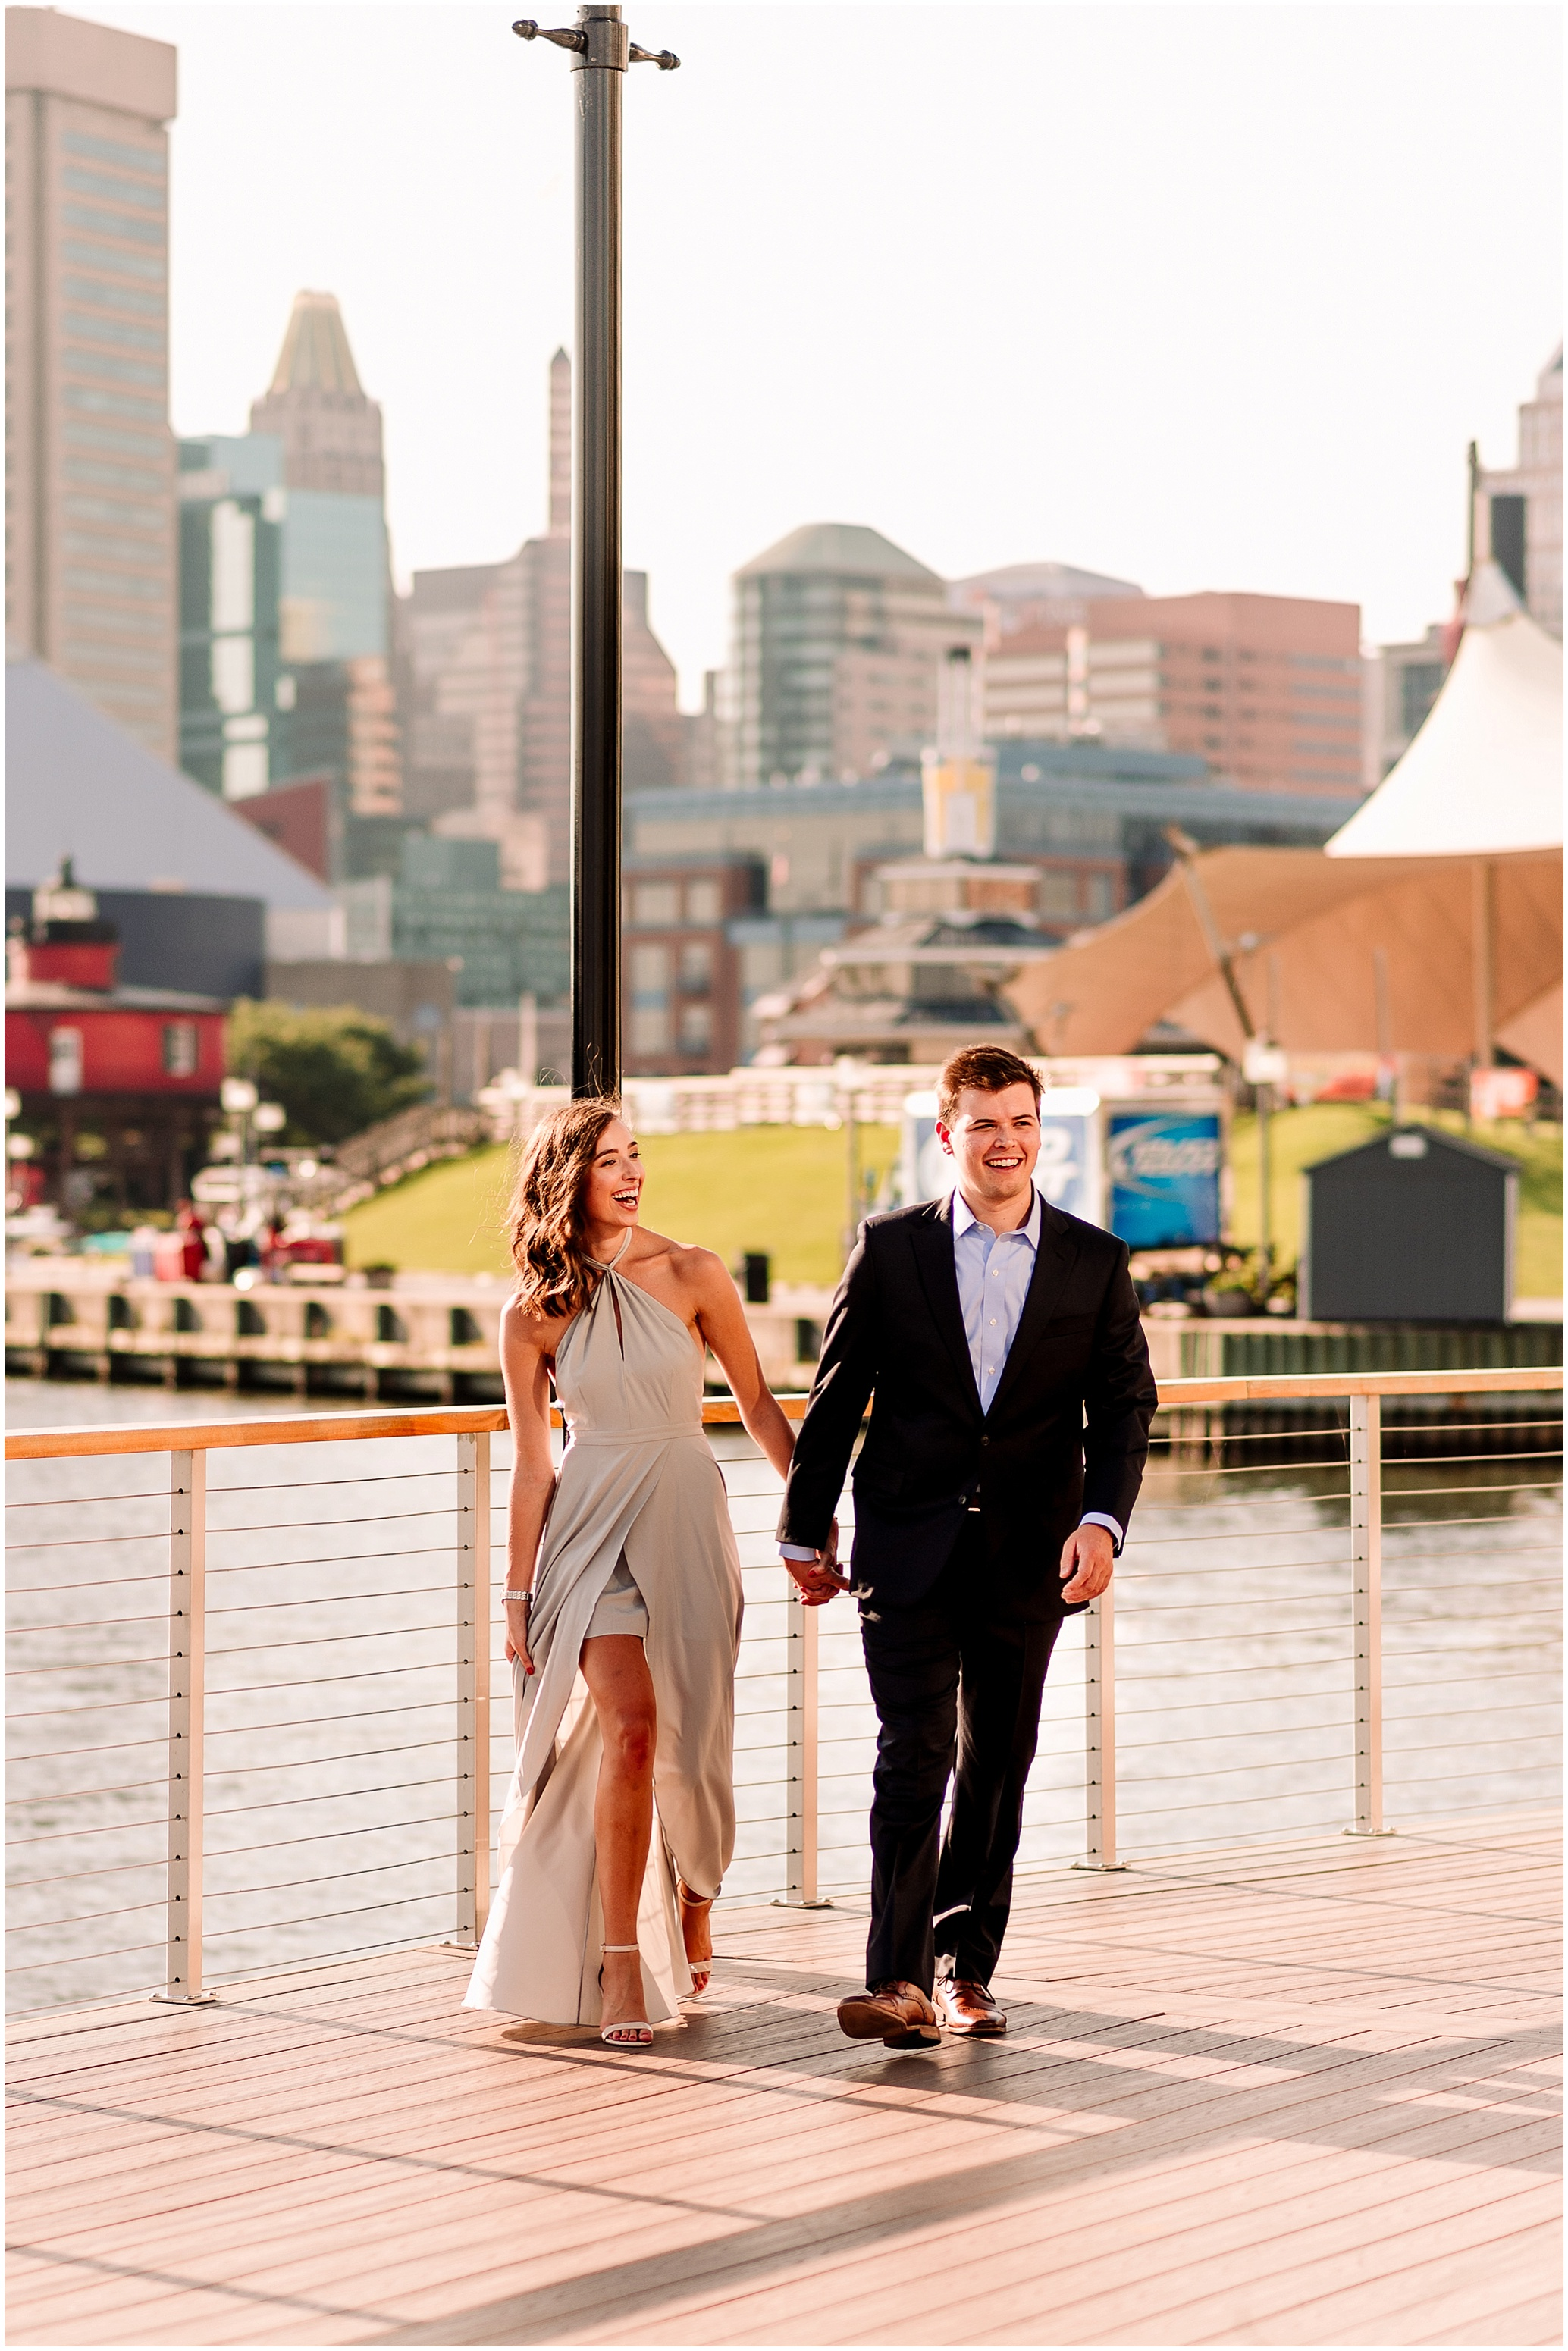 Hannah Leigh Photography Baltimore City, MD Engagement Session_5627.jpg